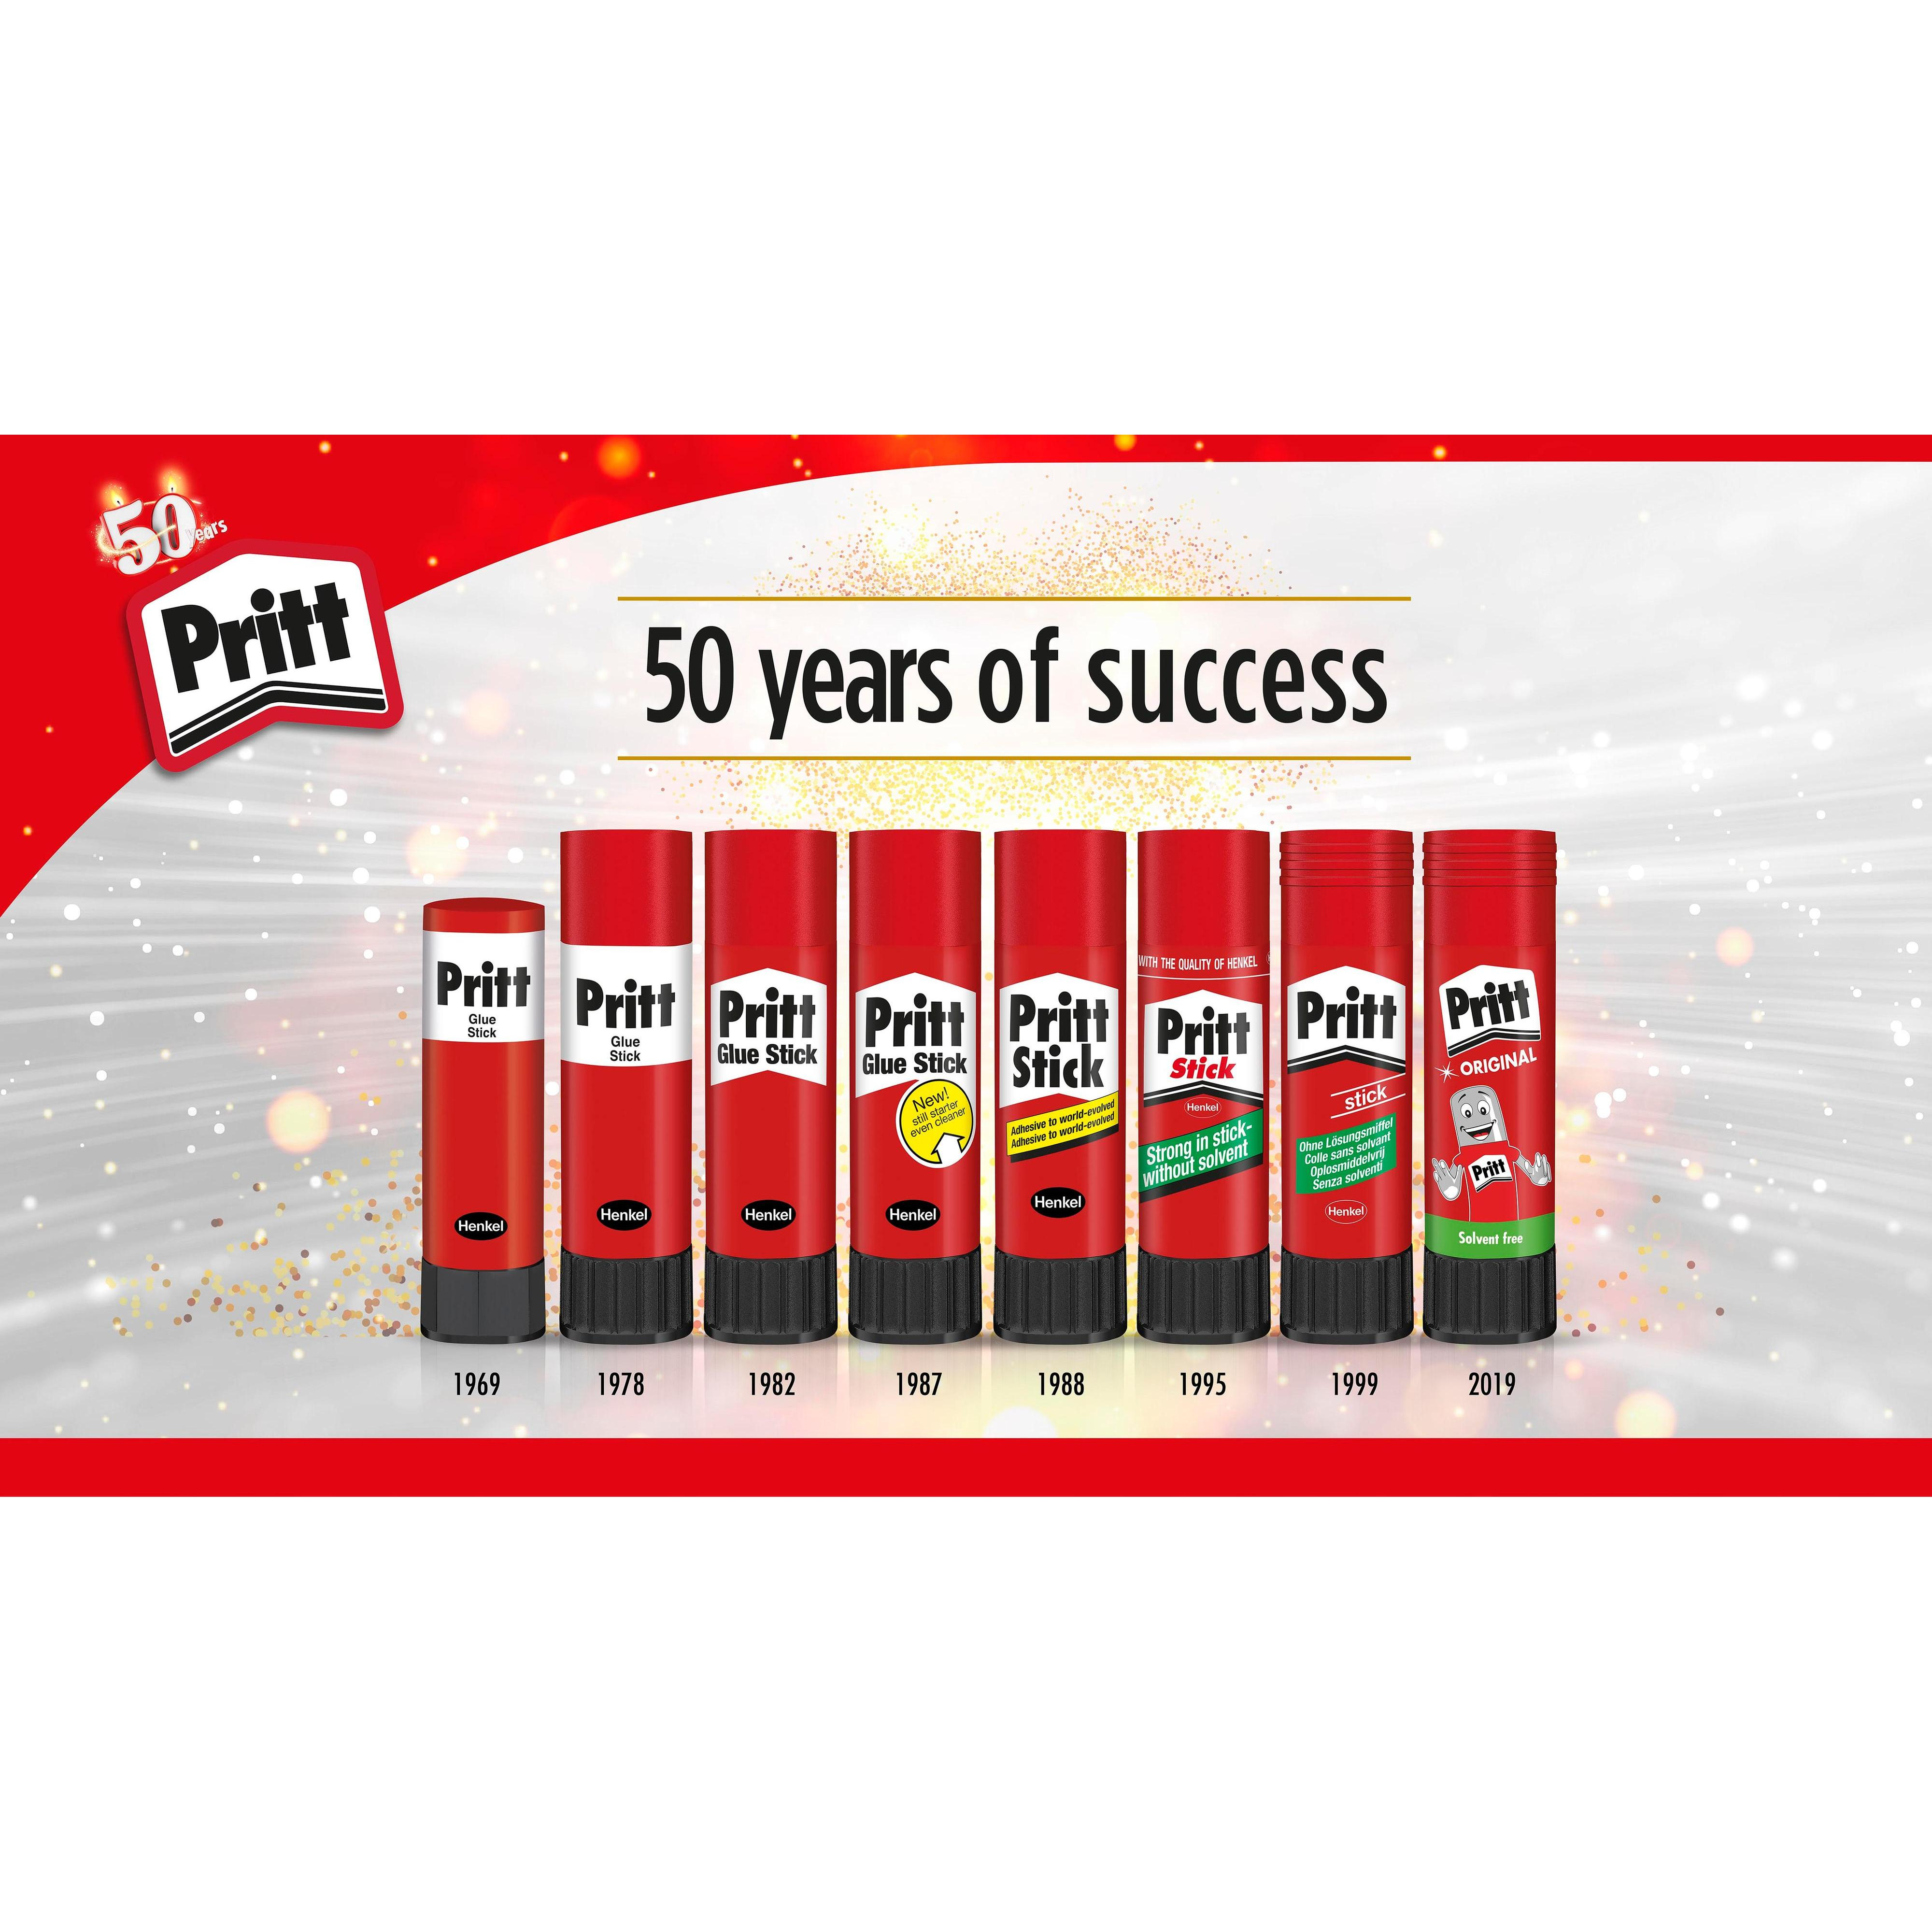 50 years of brand success – Henkel has continuously improved the quality and formulation of its glue sticks.